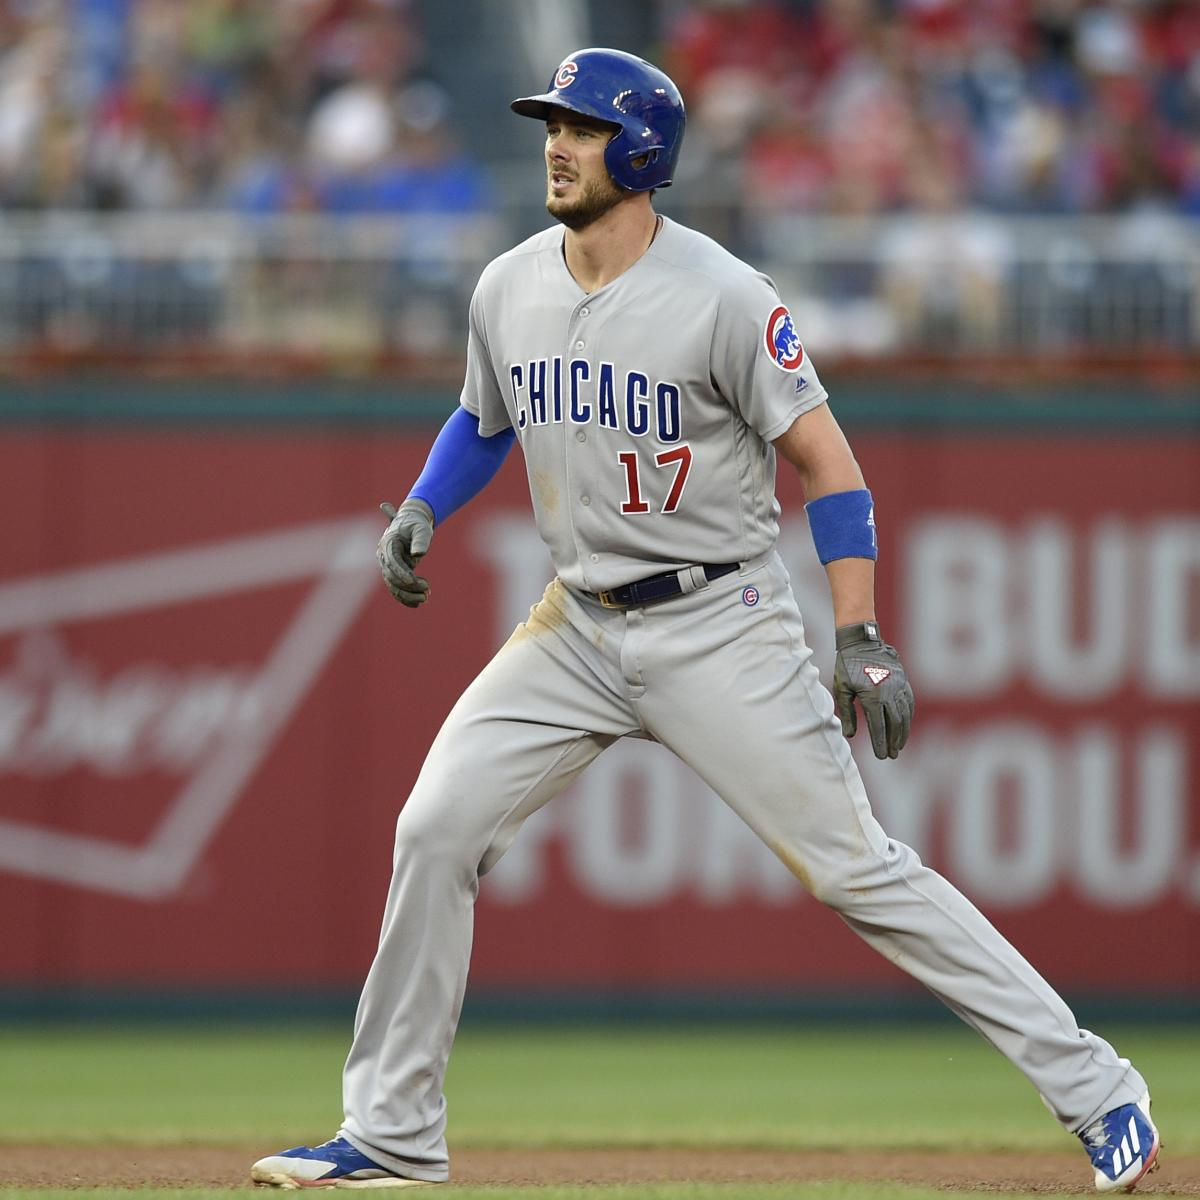 Kris Bryant Suffers Hand Injury After Being Hit by Pitch vs. Reds